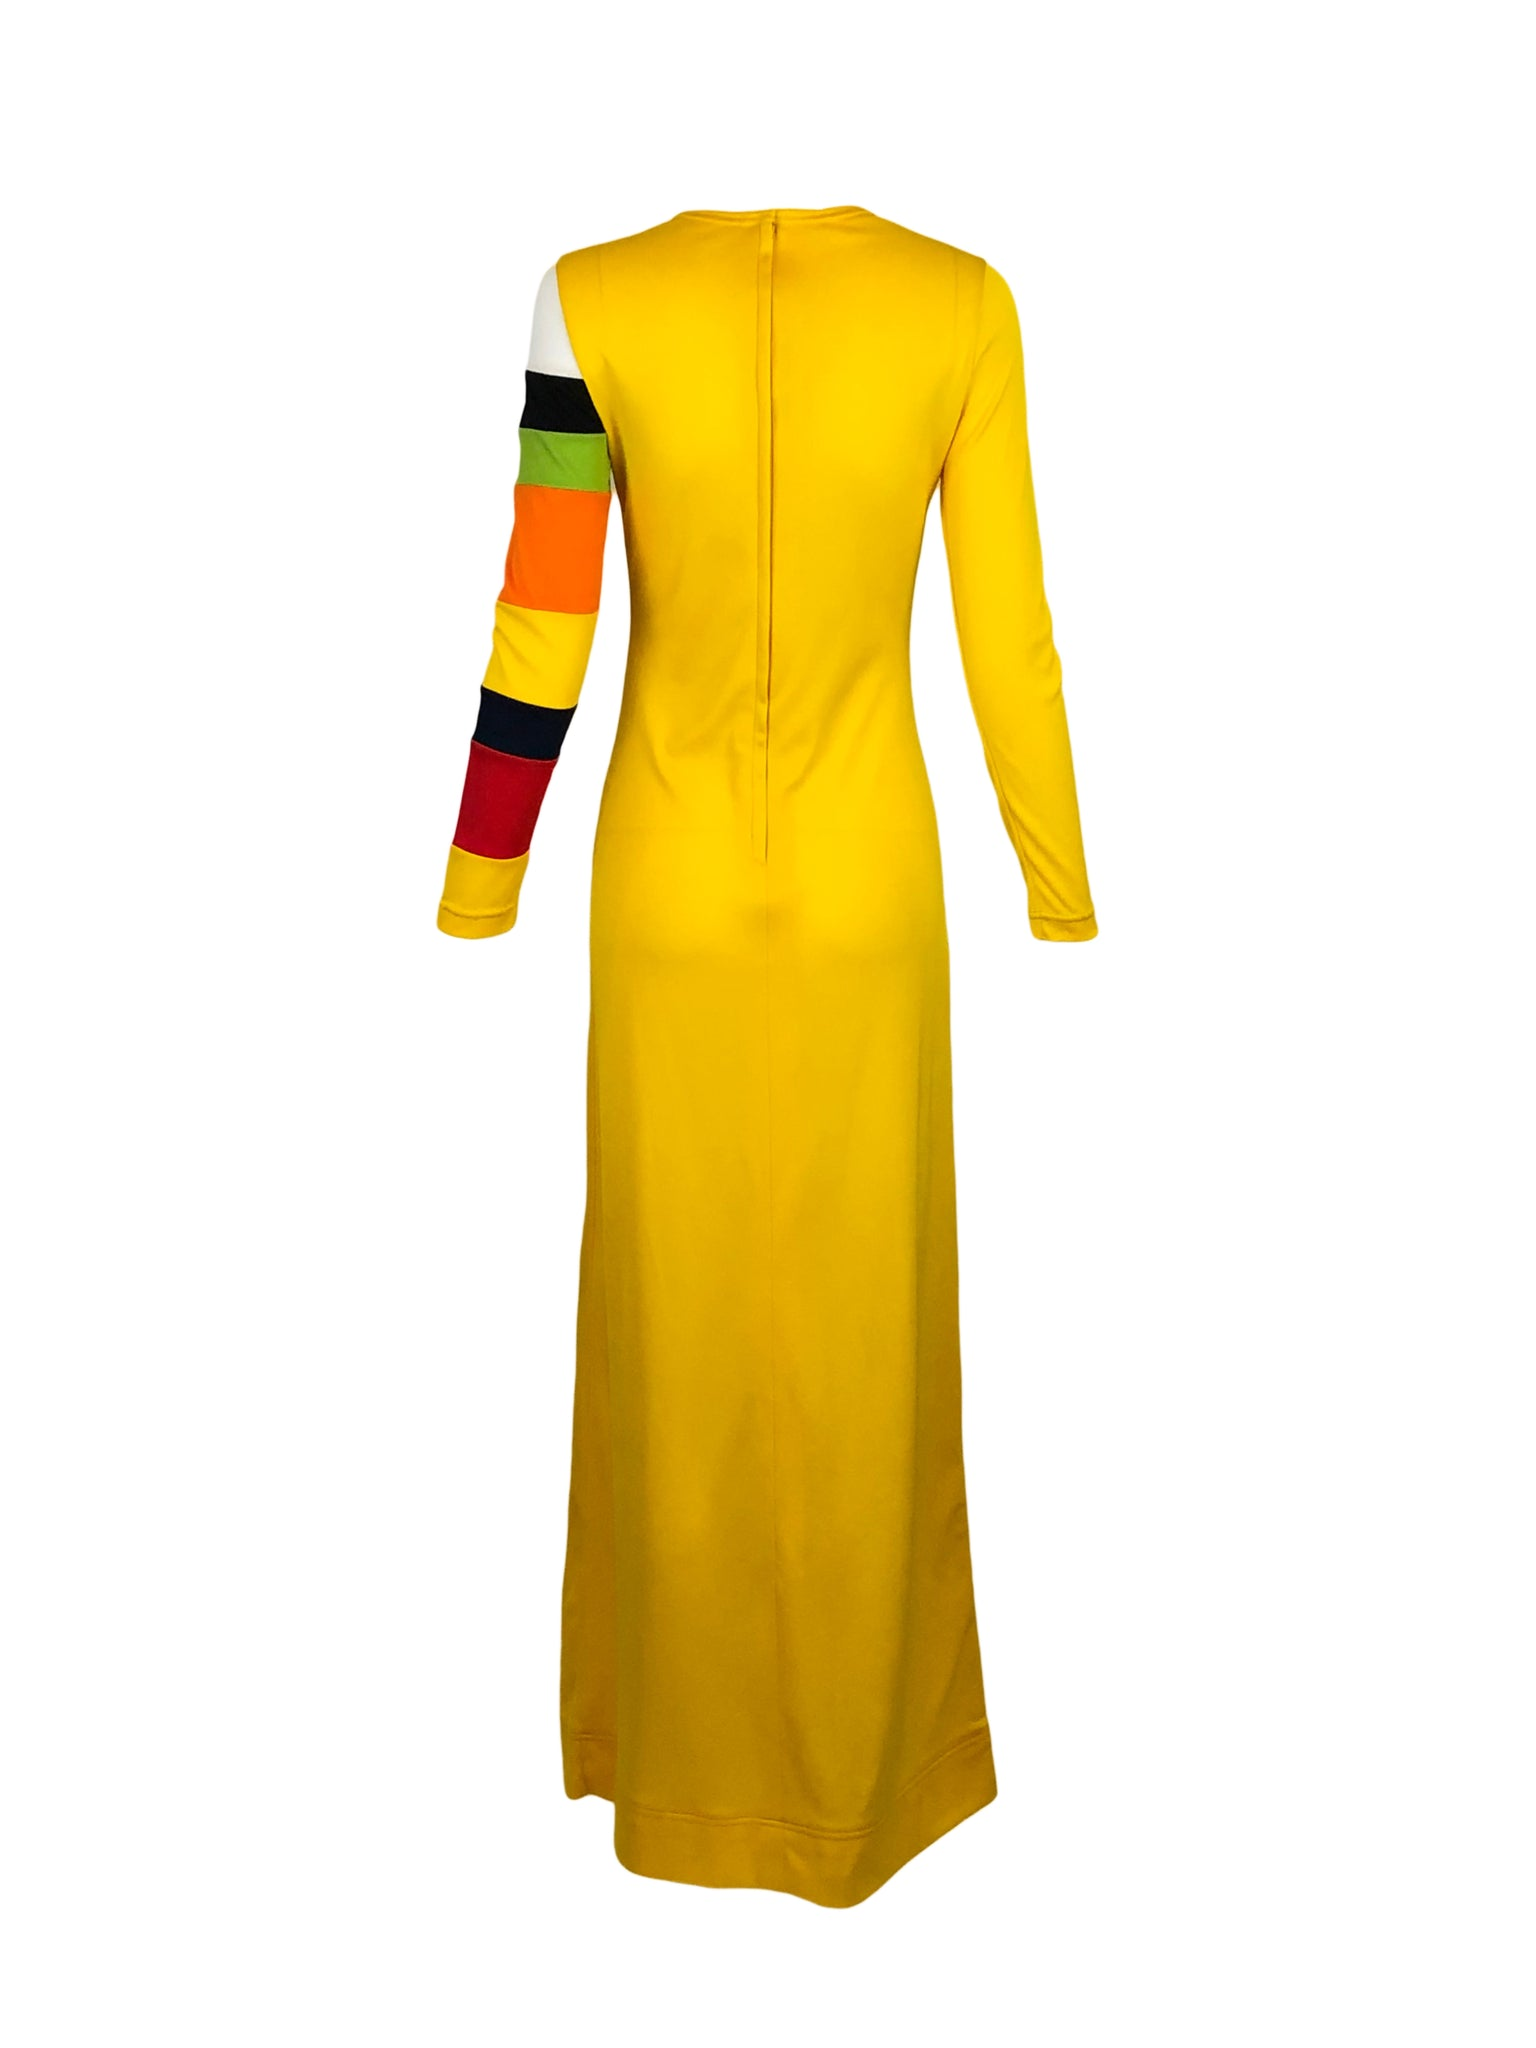 Rudi Gernreich Yellow Maxi Dress with Striped Sleeve Back 3 of 5